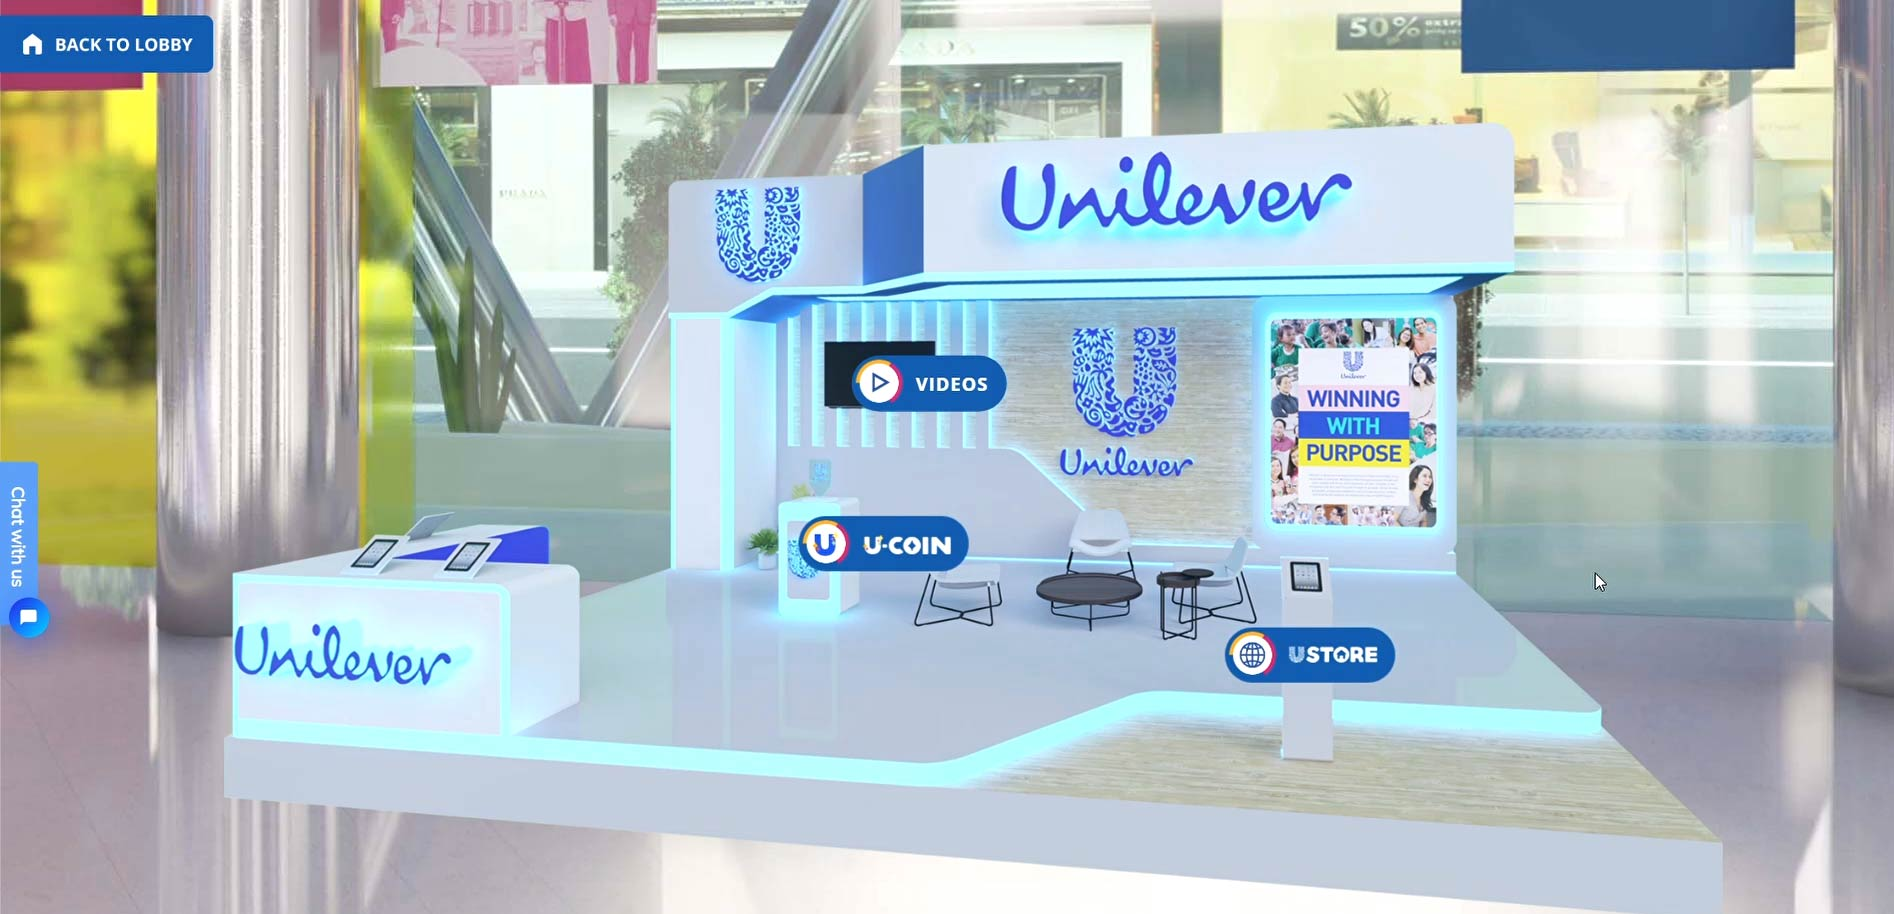 Unilever's booth